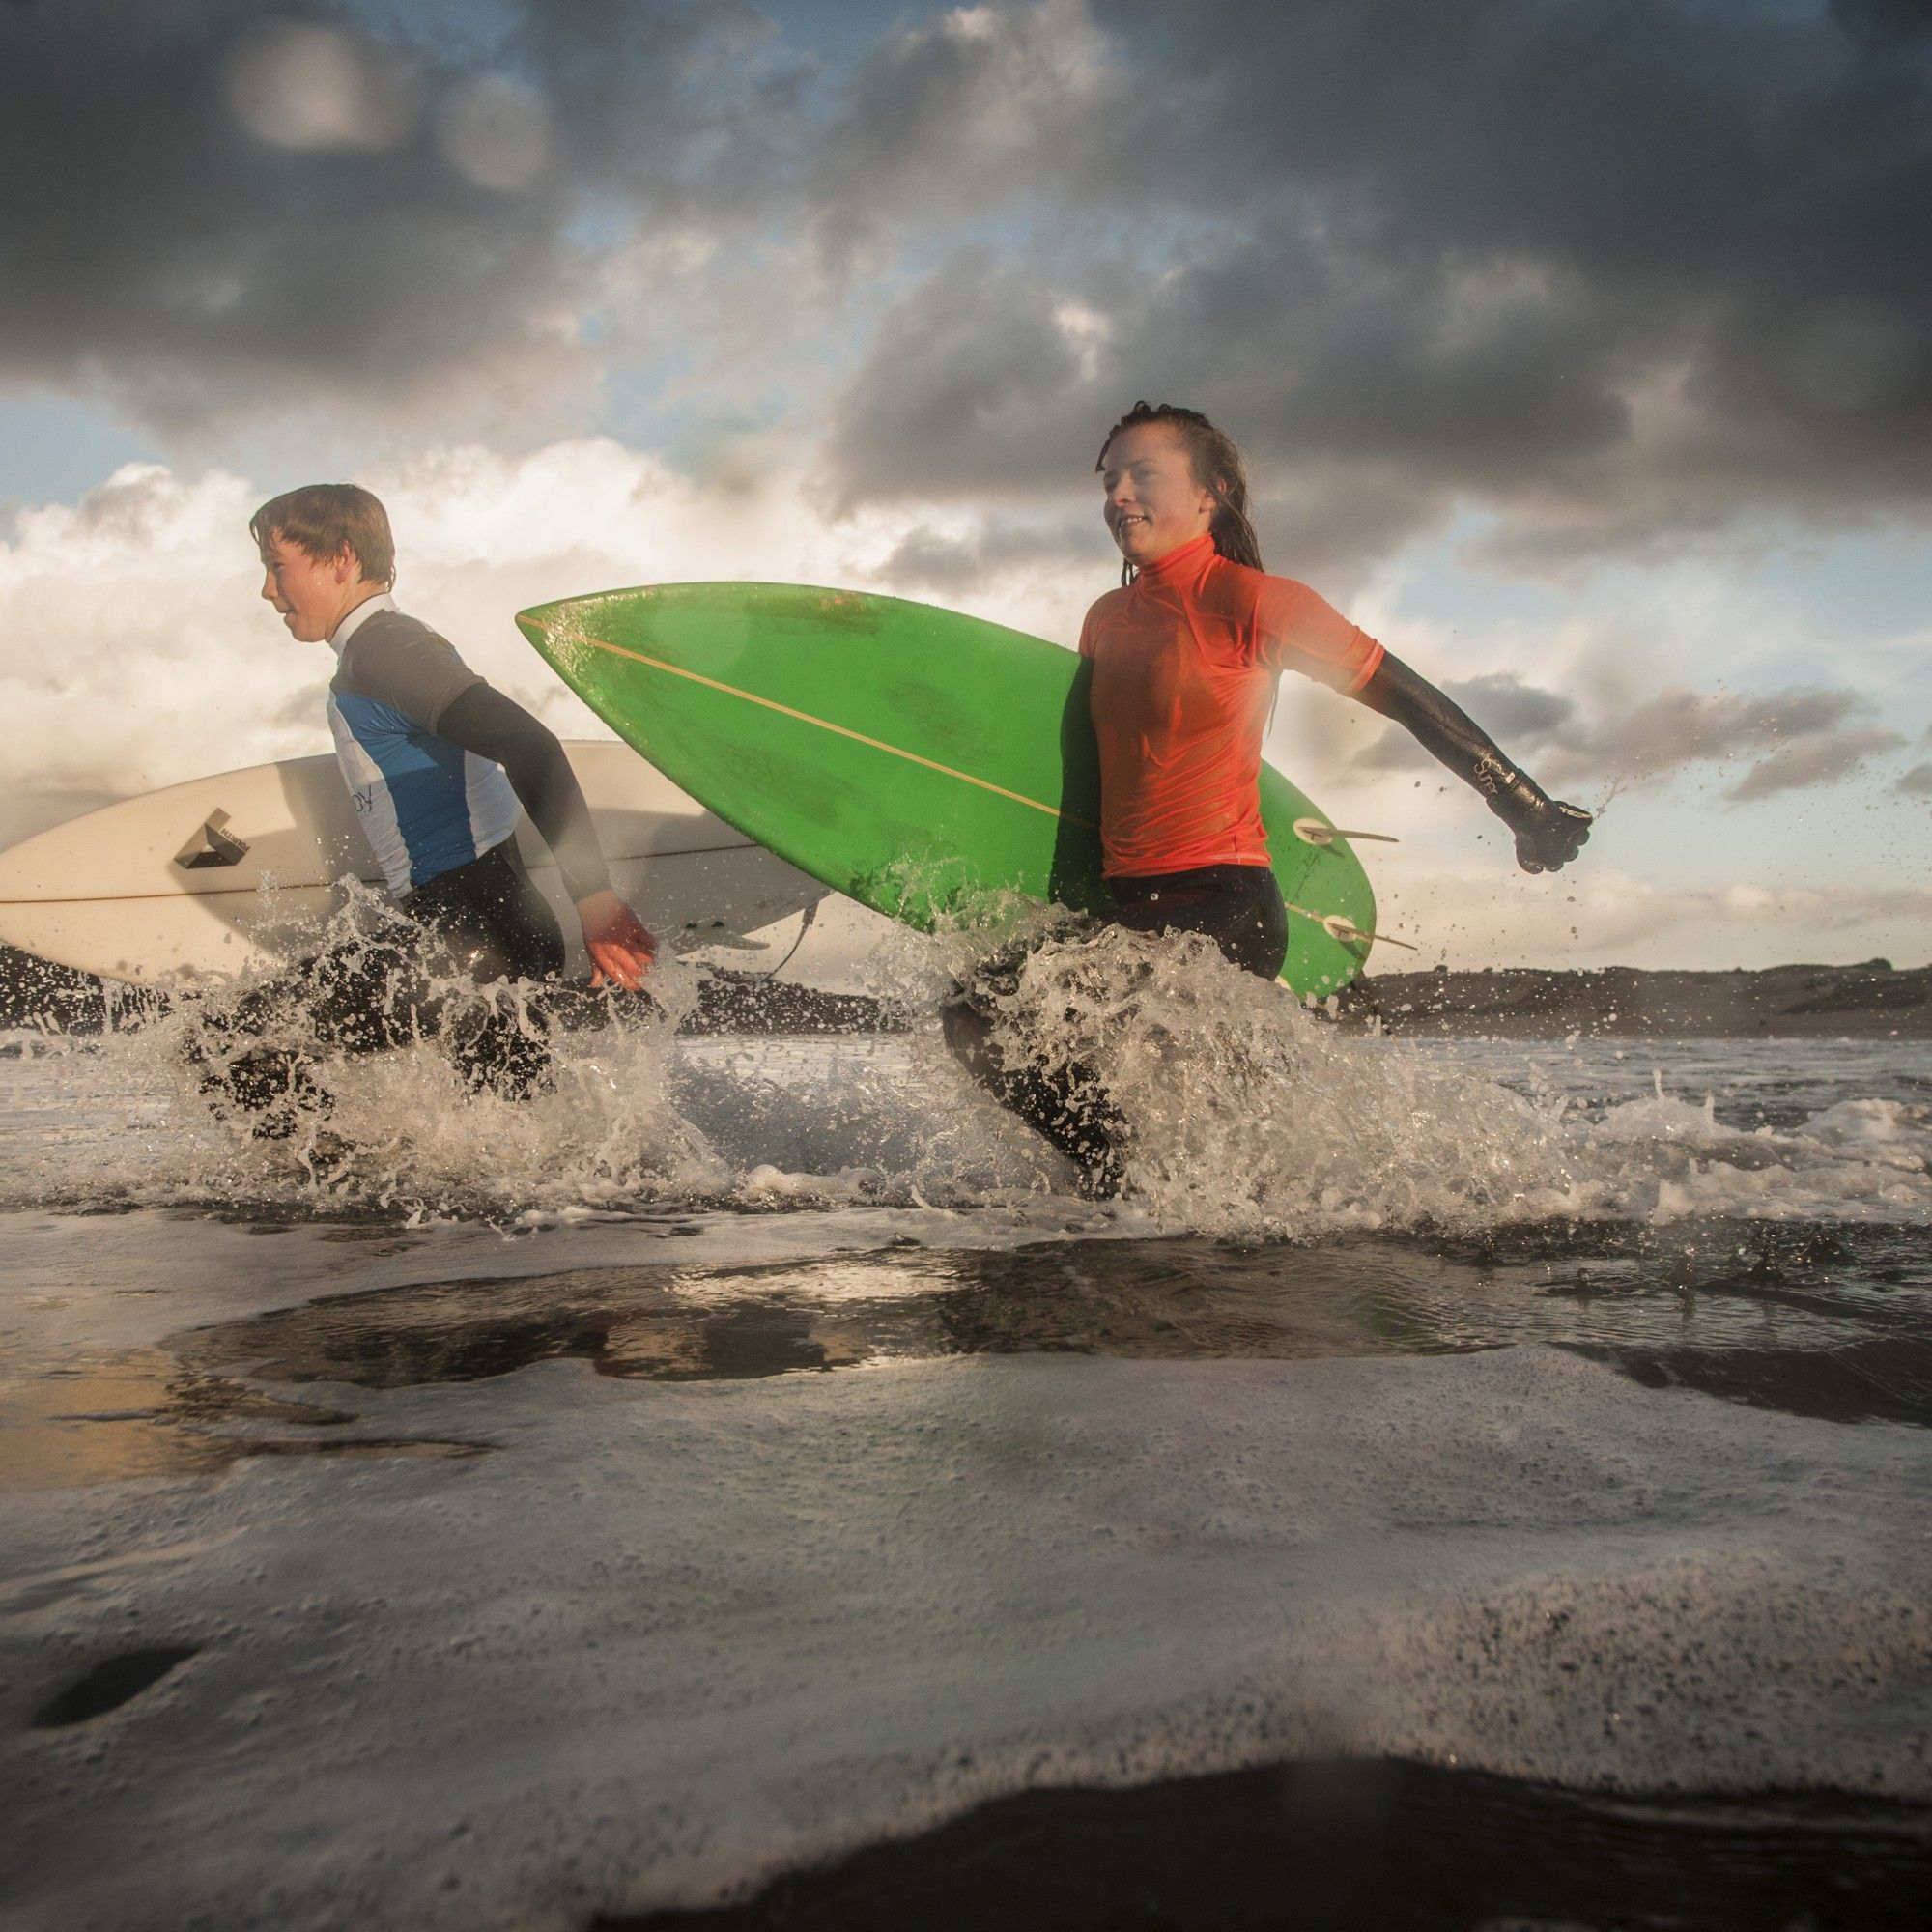 truro school, surfing